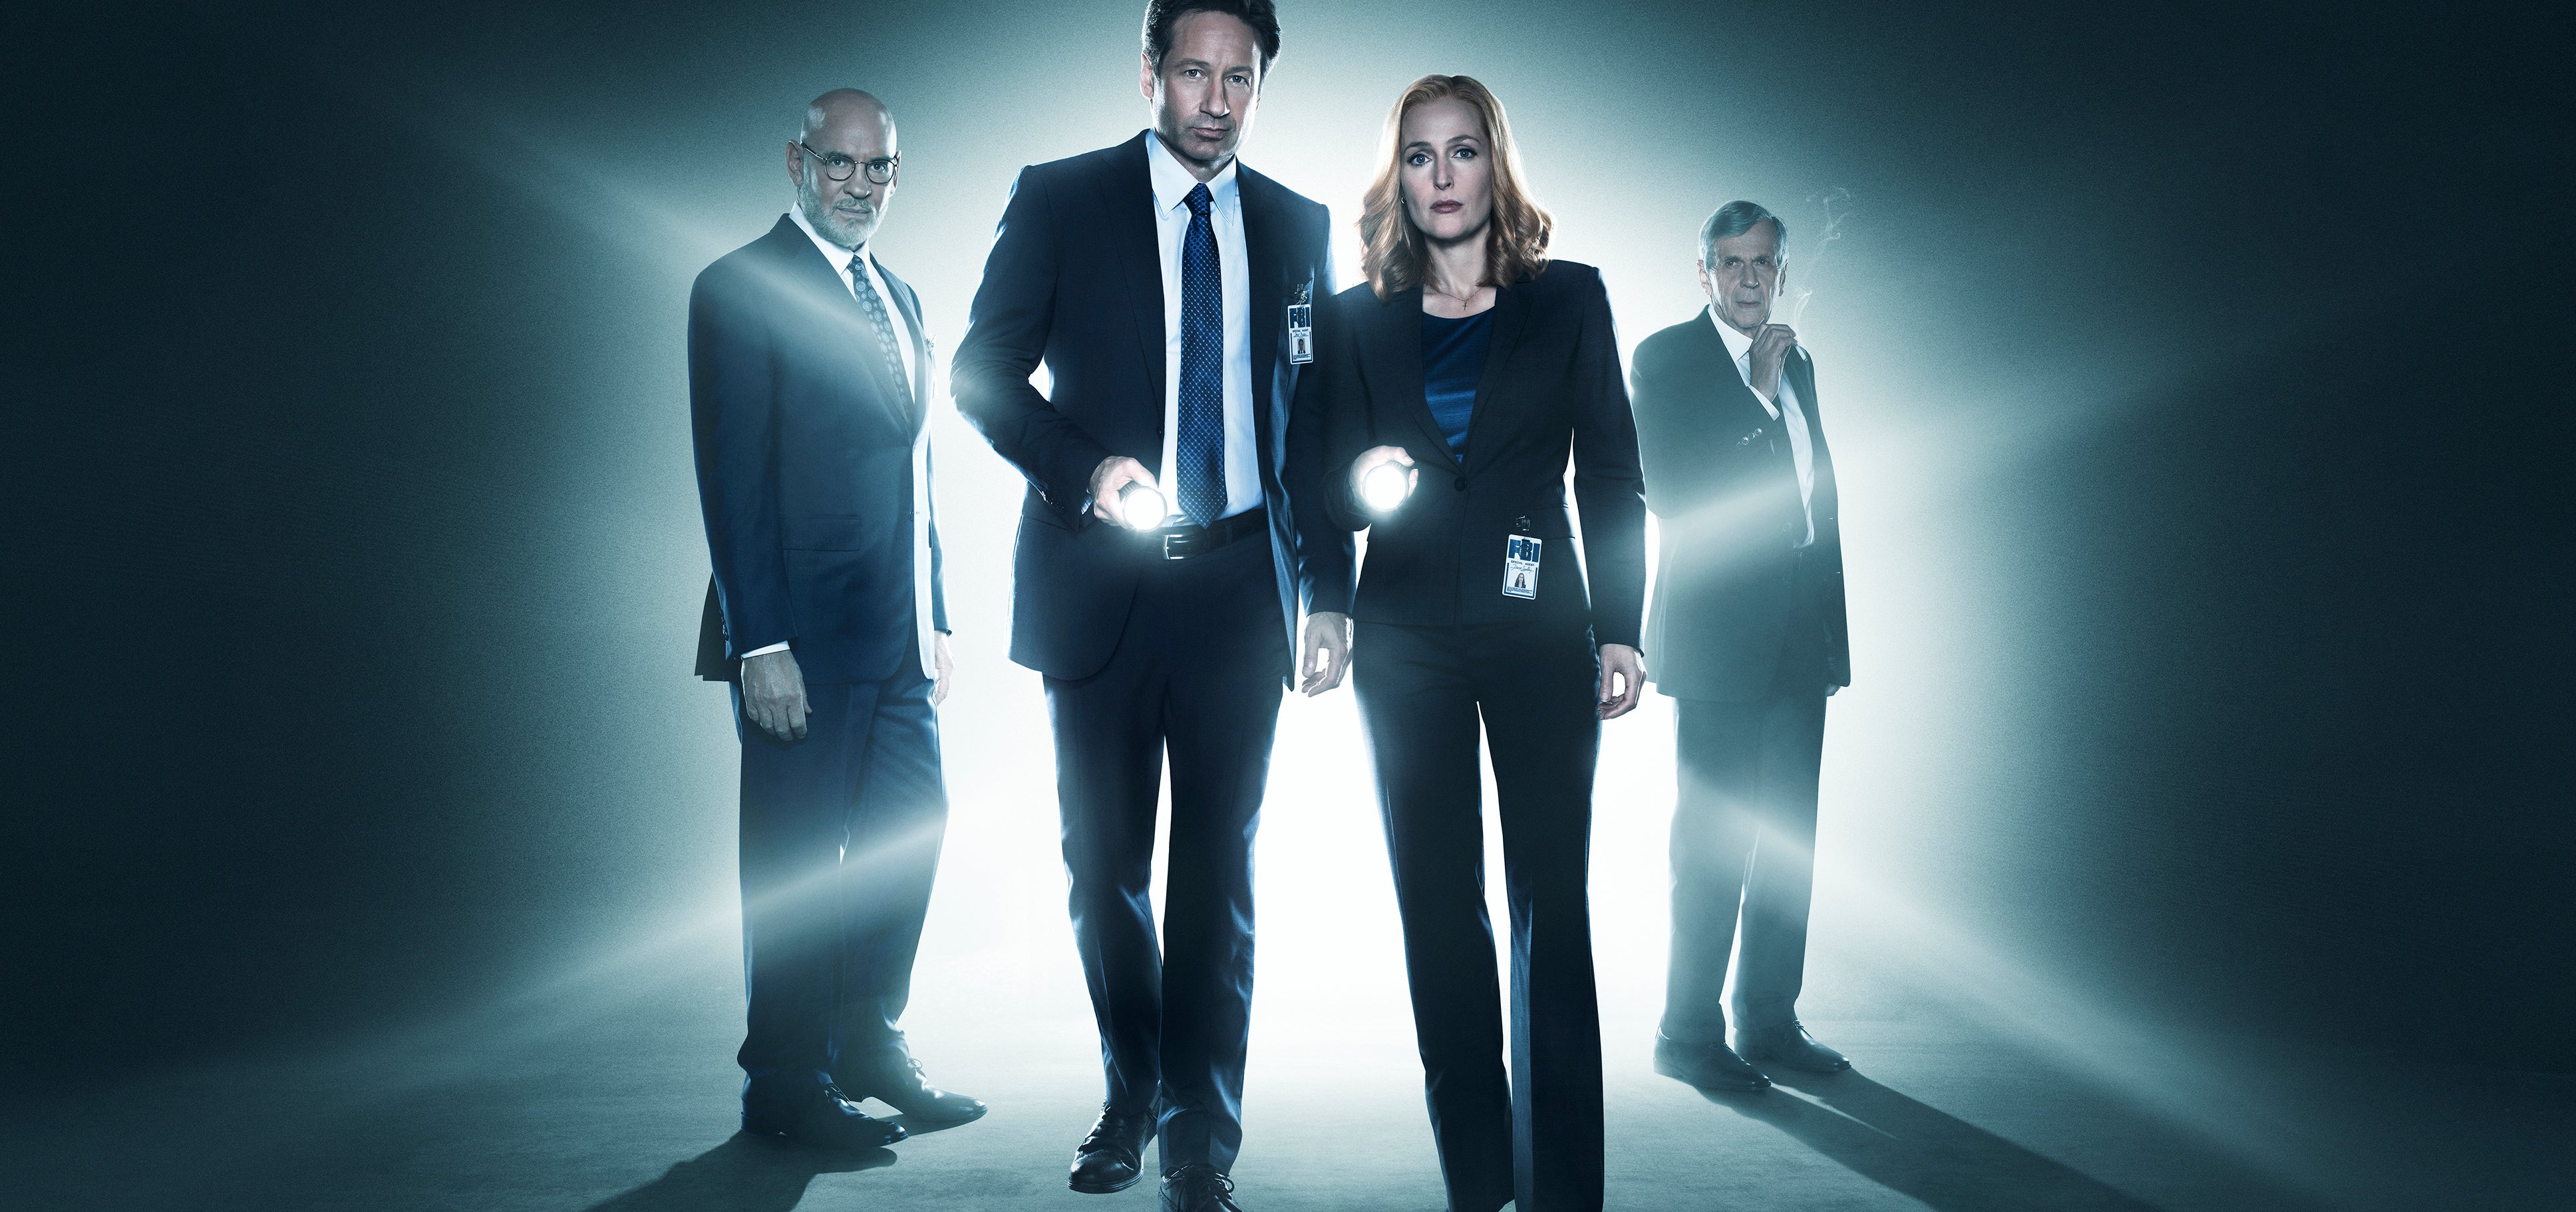 The X-Files Premiere Was Terrible And I Still Loved It